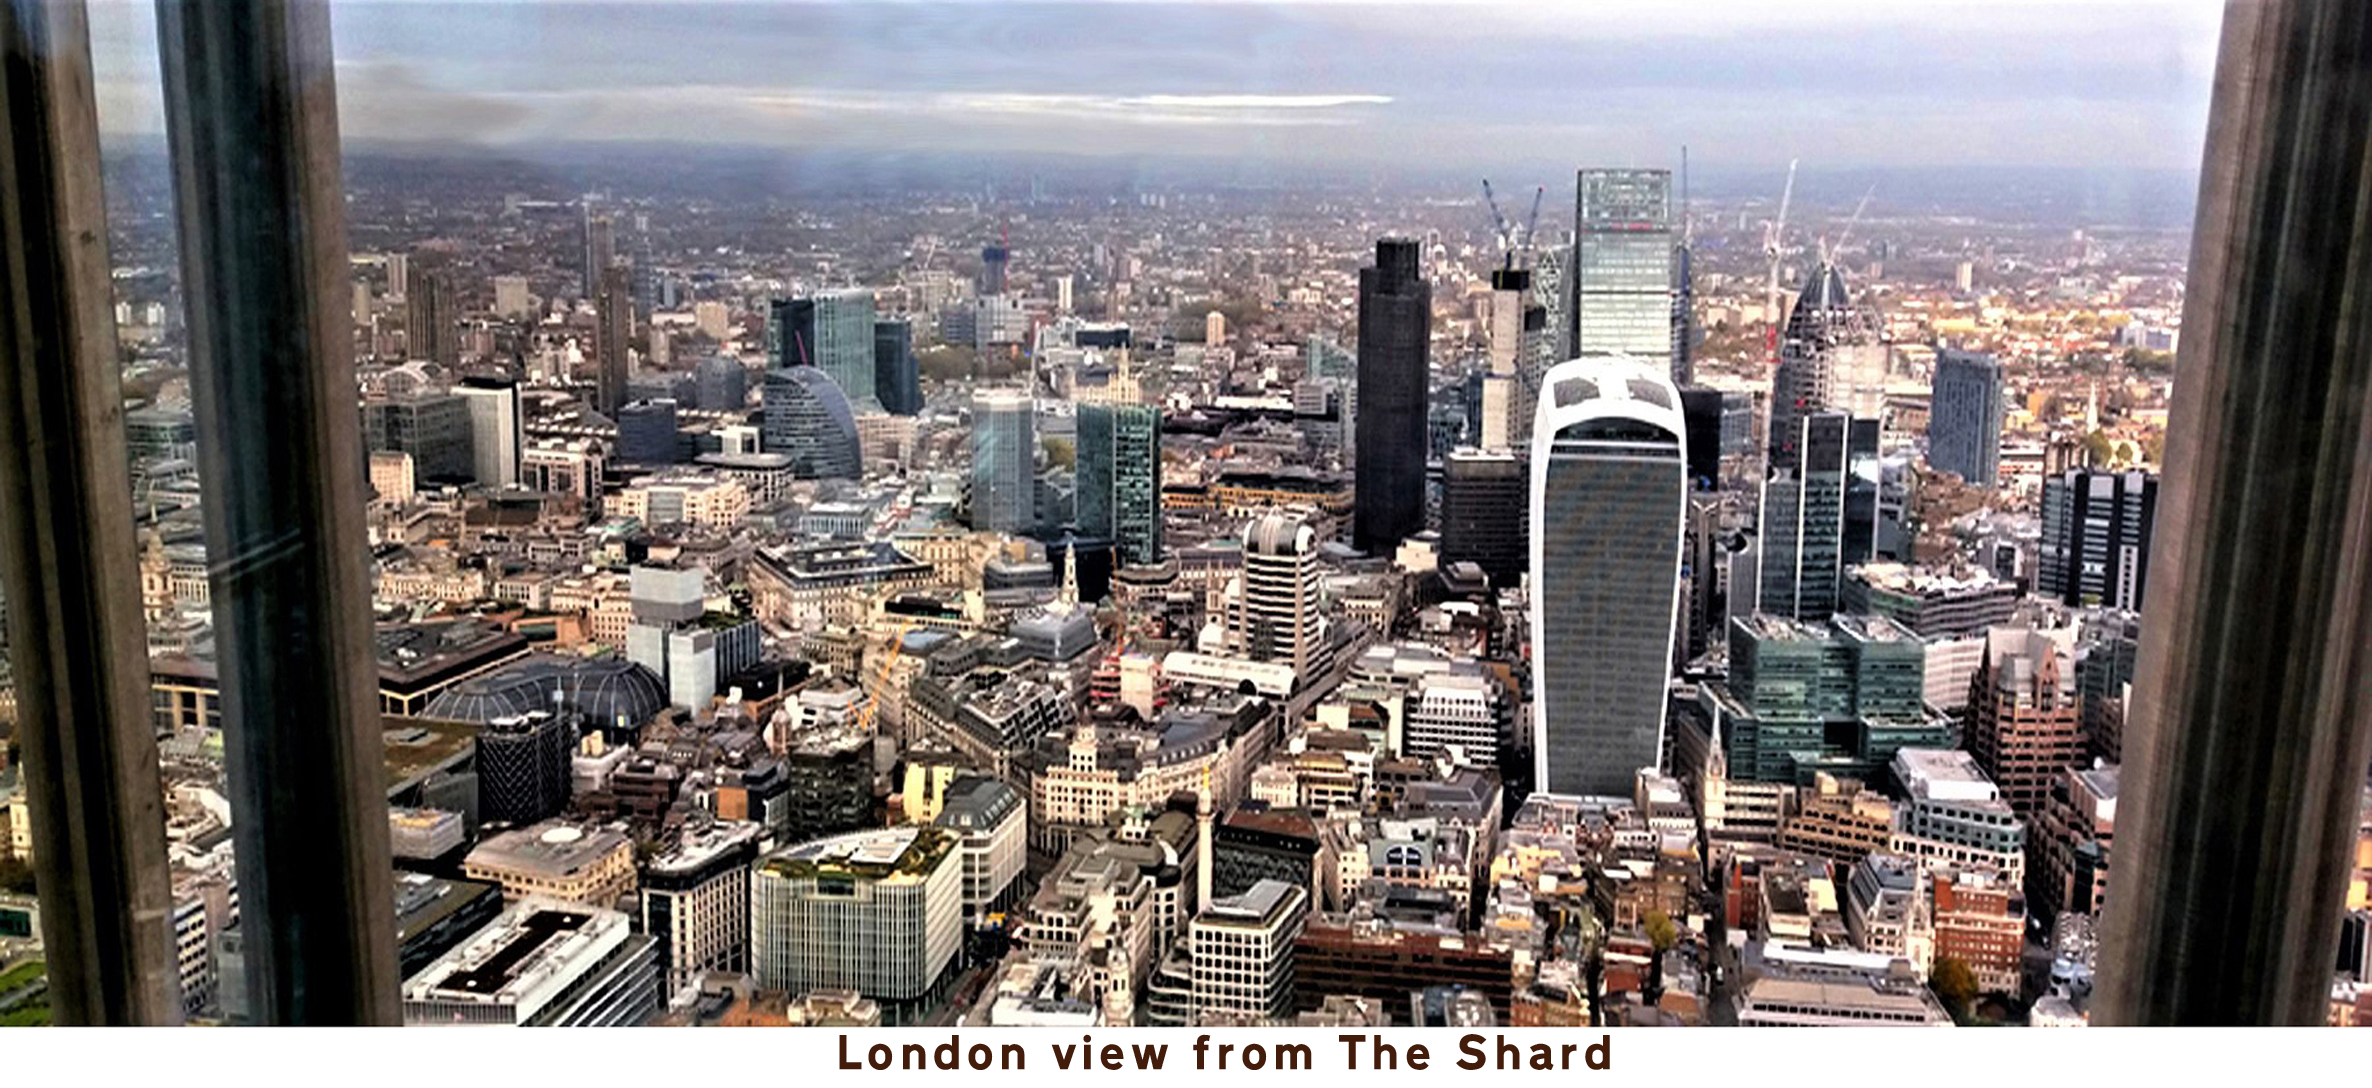 Postcard: London view from The Shard (north)